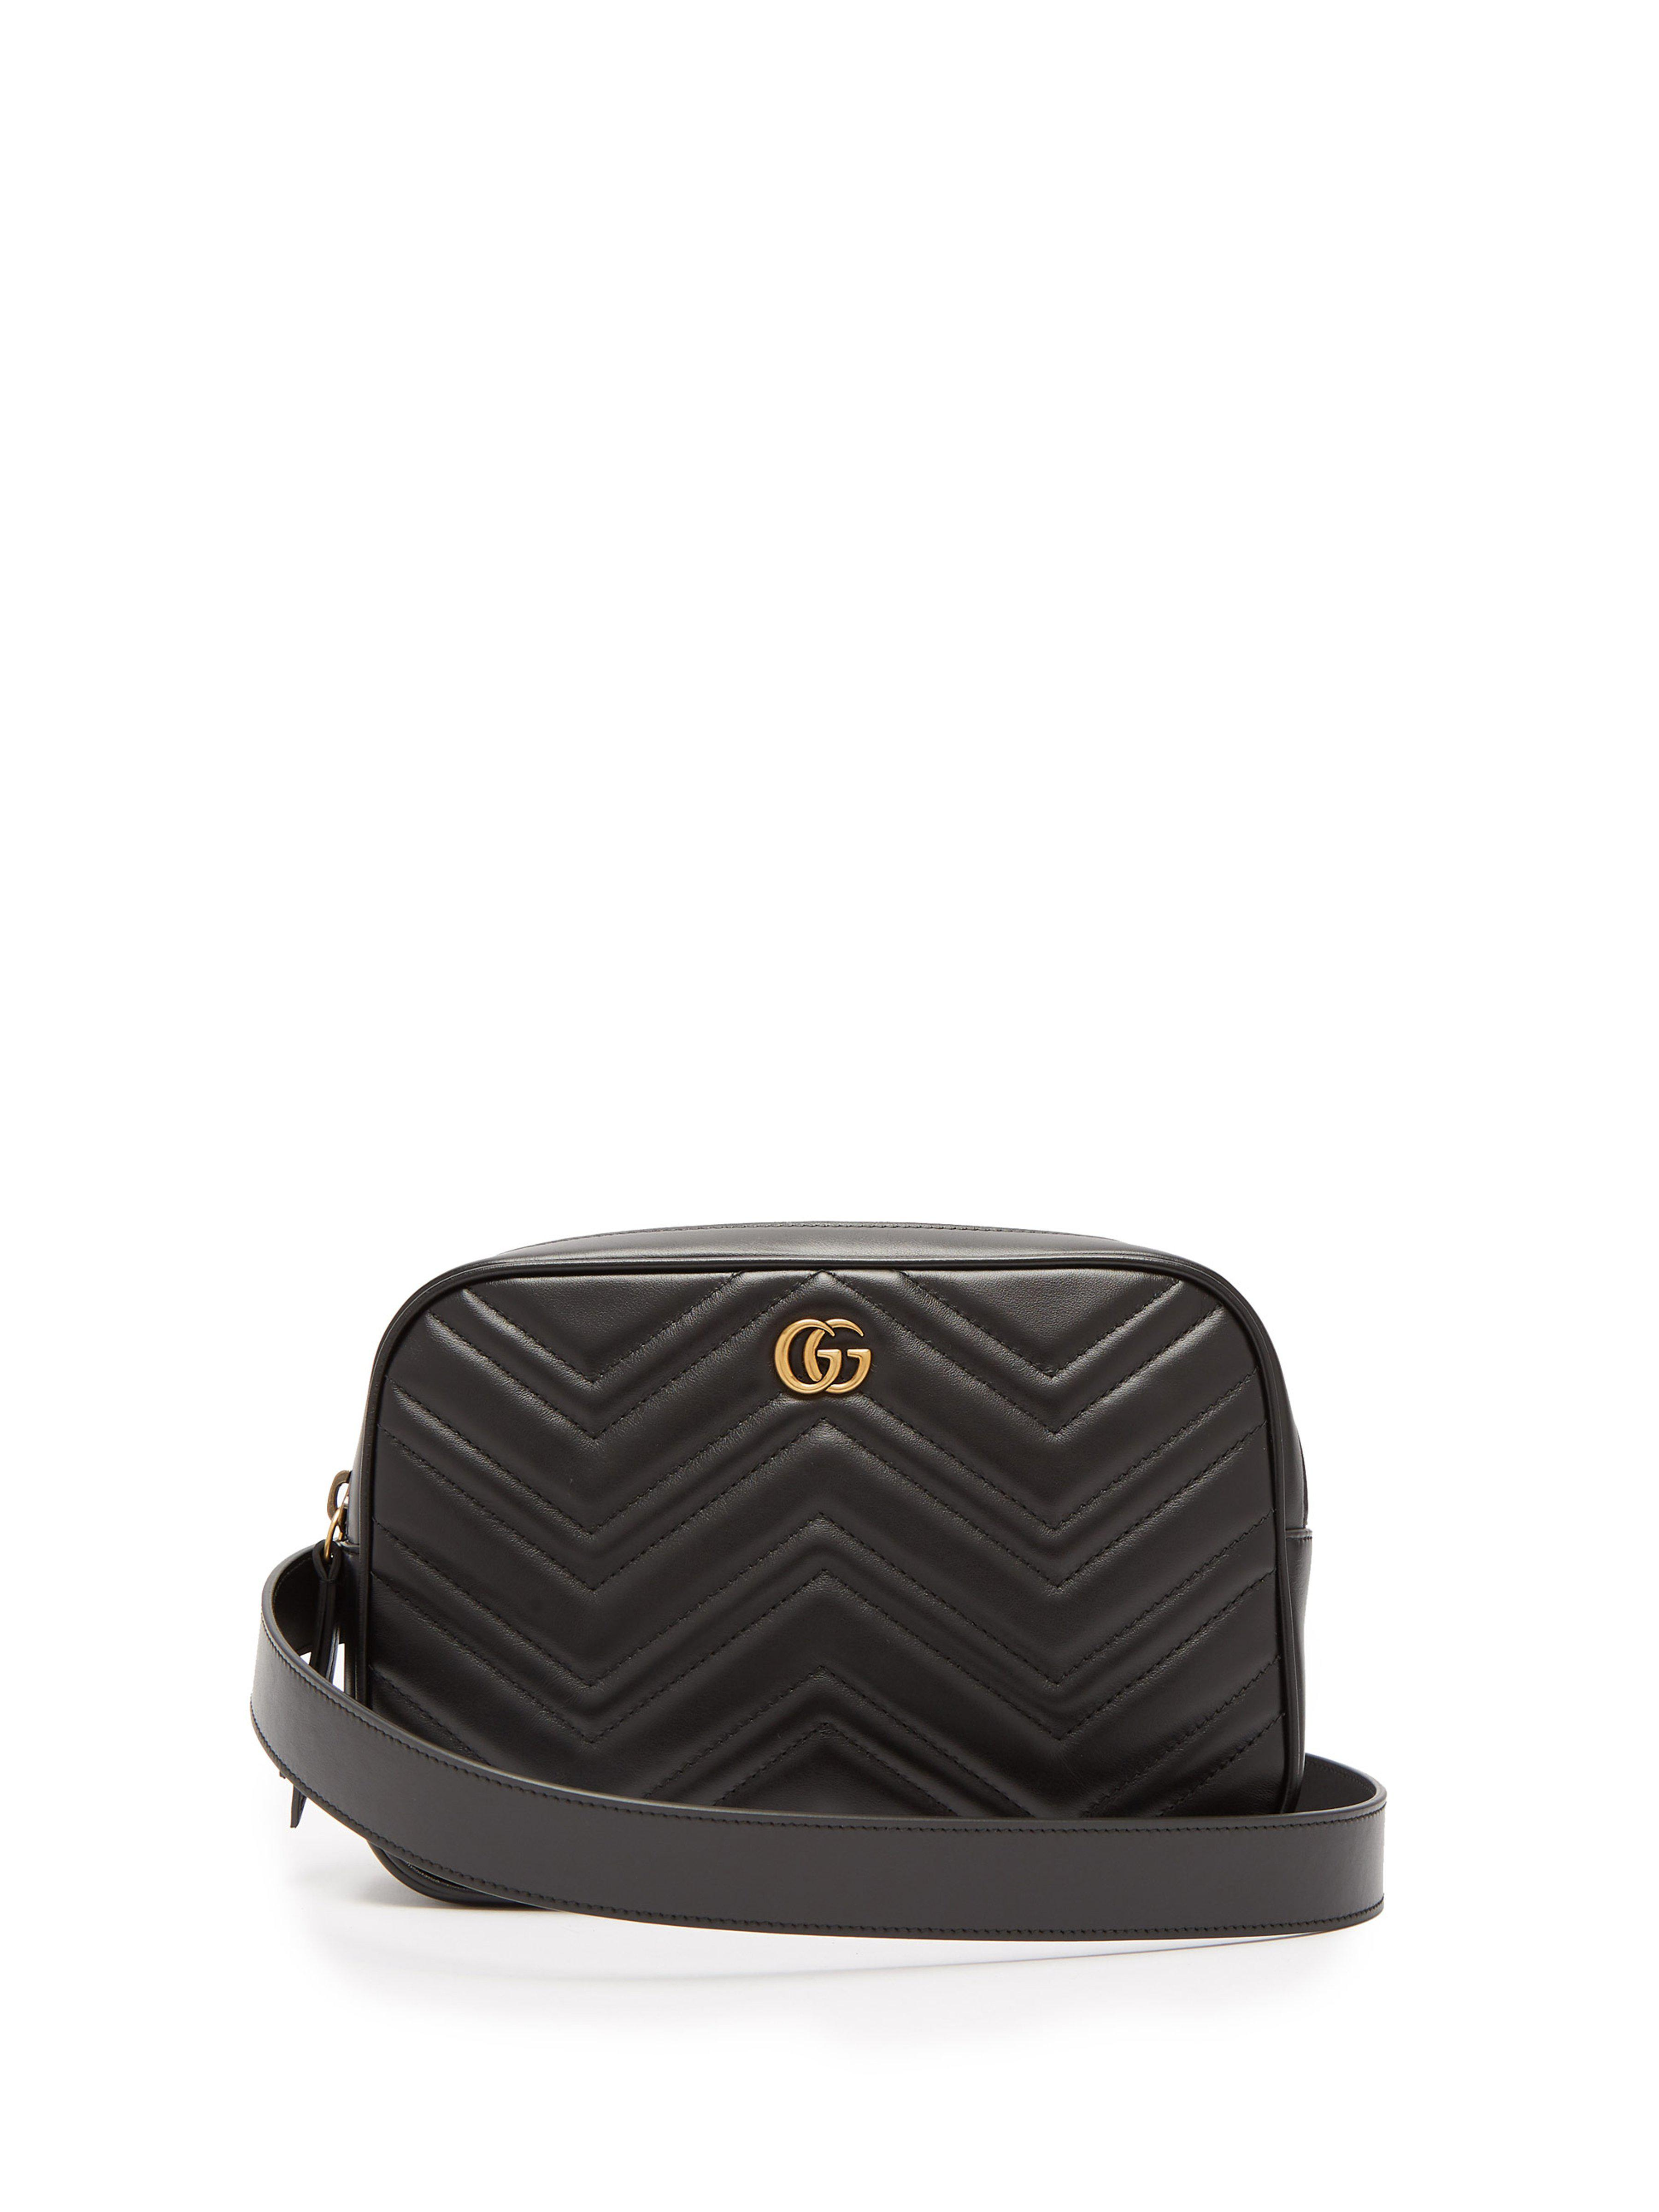 f81d29731fa9 Gucci Gg Marmont Quilted Leather Belt Bag in Black for Men - Lyst